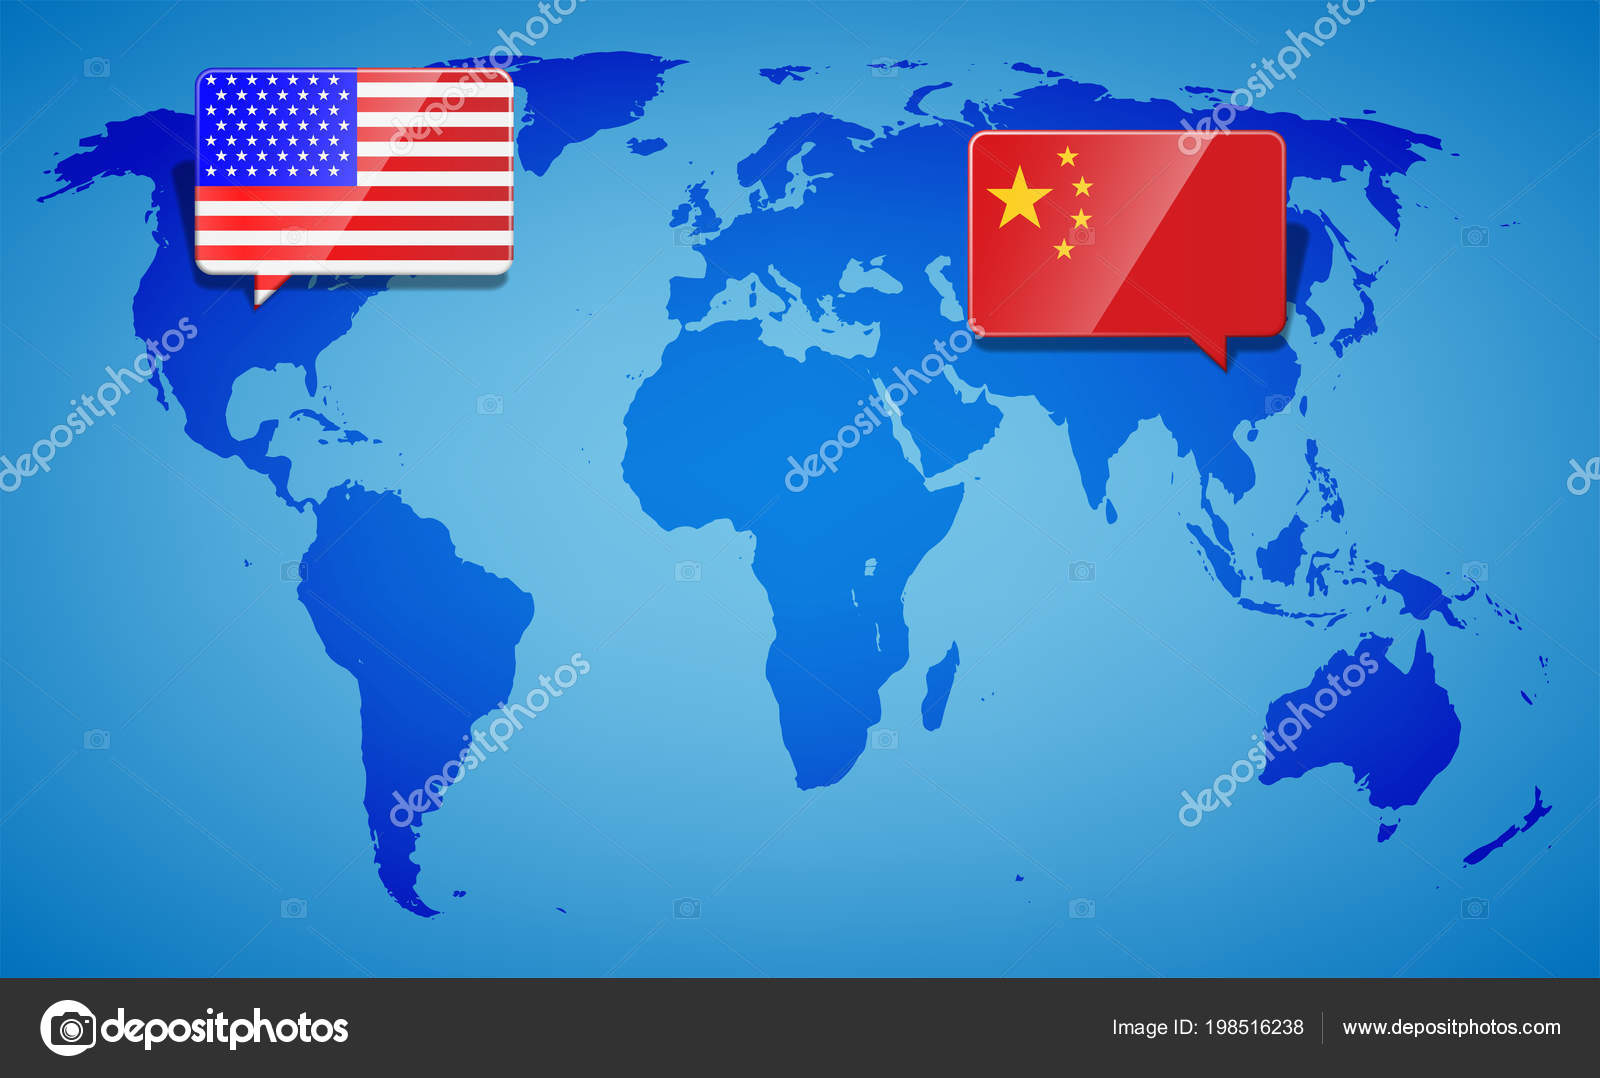 Usa and china at the blue world map background trade war with usa and china at the blue world map background trade war with america and china gumiabroncs Choice Image